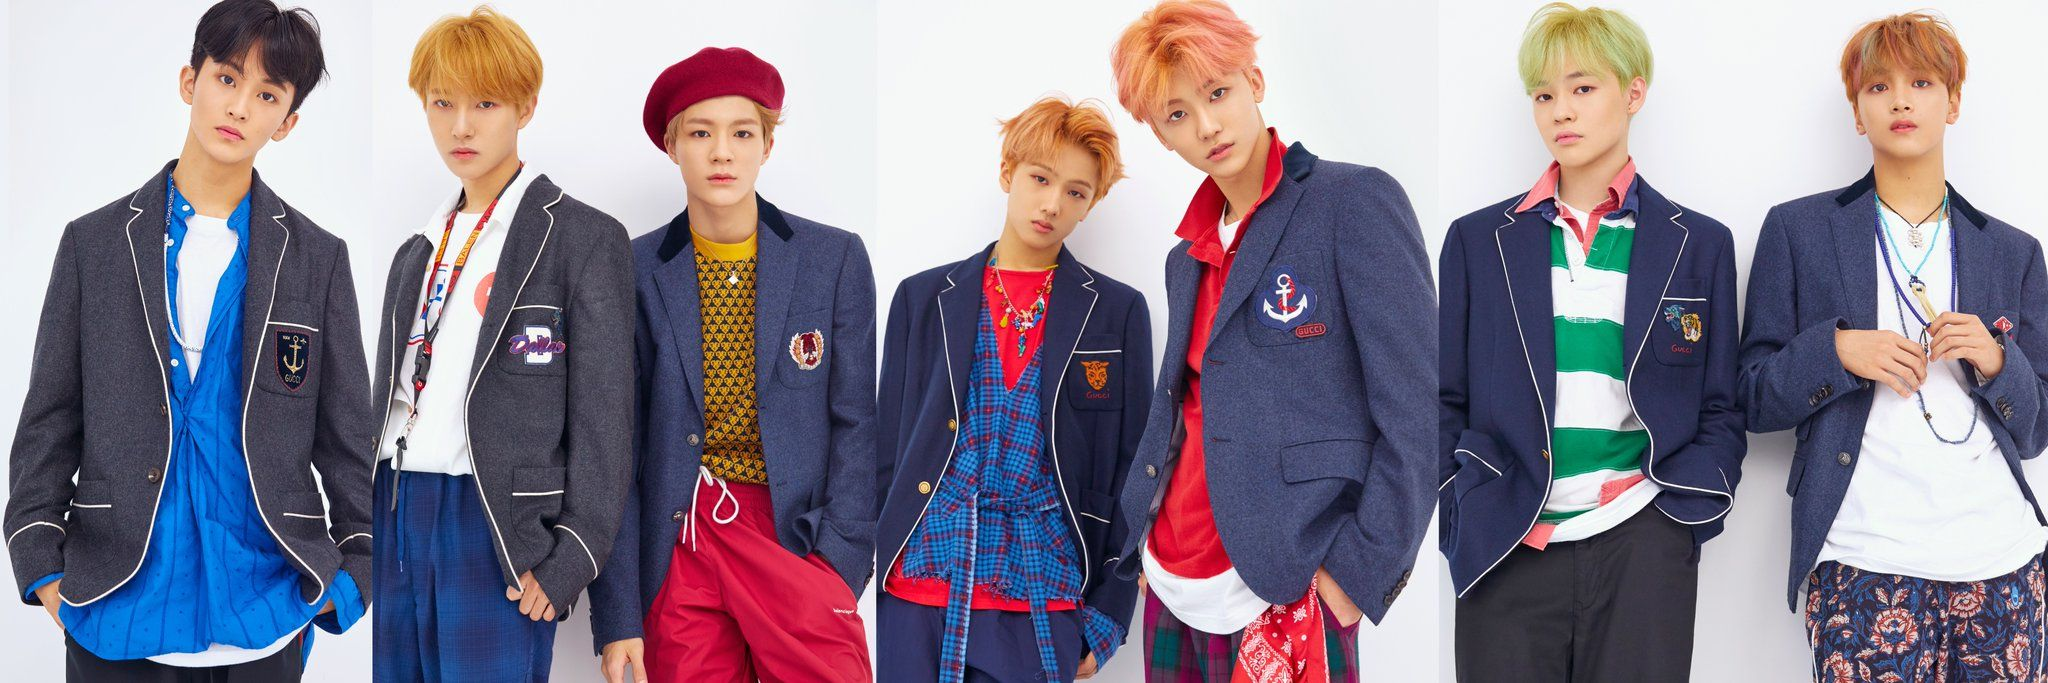 Nct Dream On With Images Nct Dream Nct Nct 127